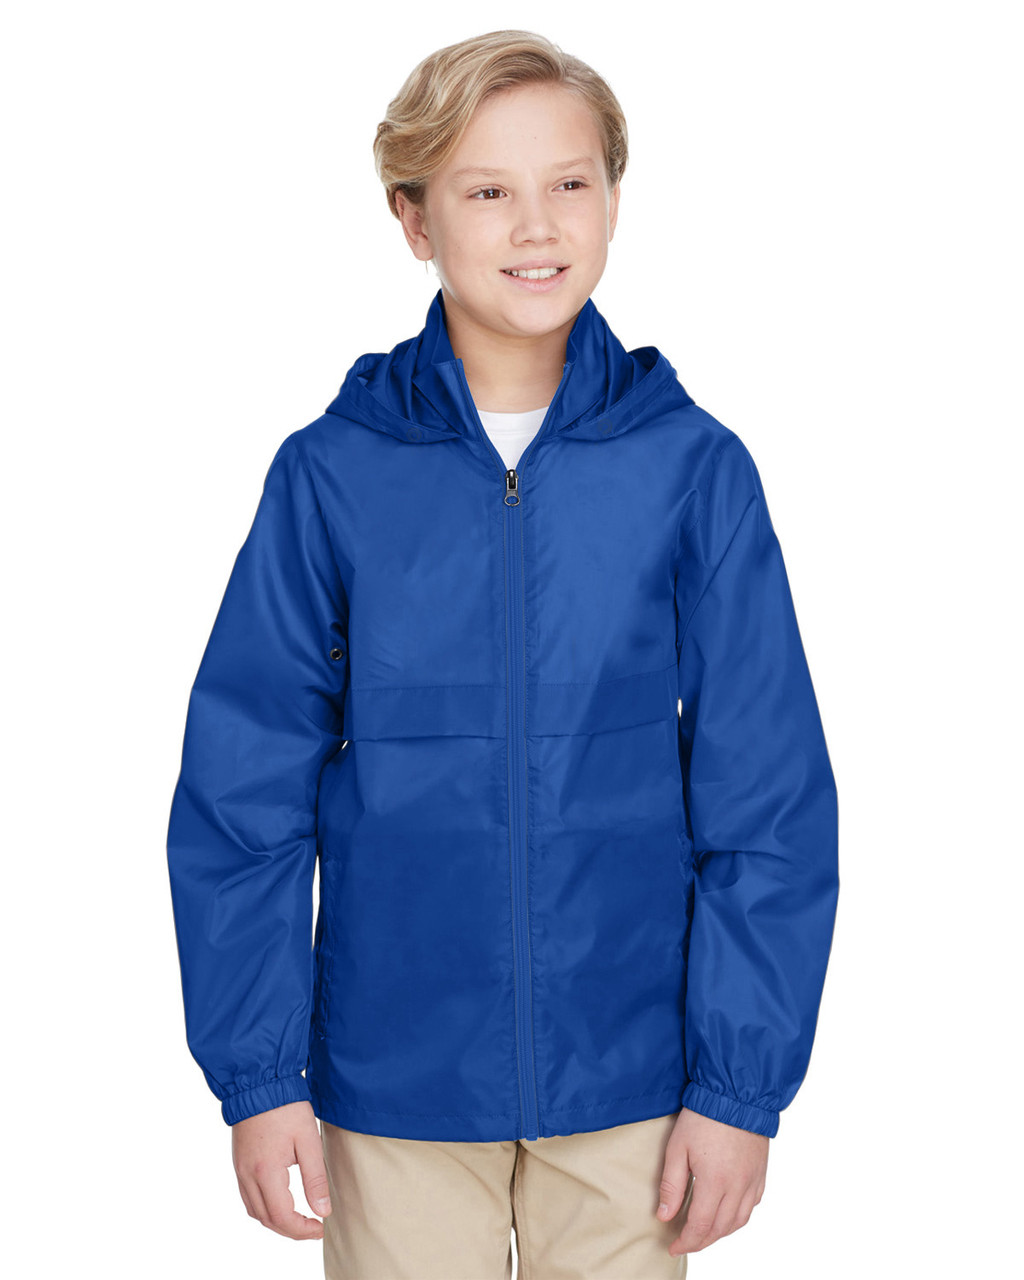 Sport Royal - TT73Y Team 365 Youth Zone Protect Lightweight Jacket  | BlankClothing.ca